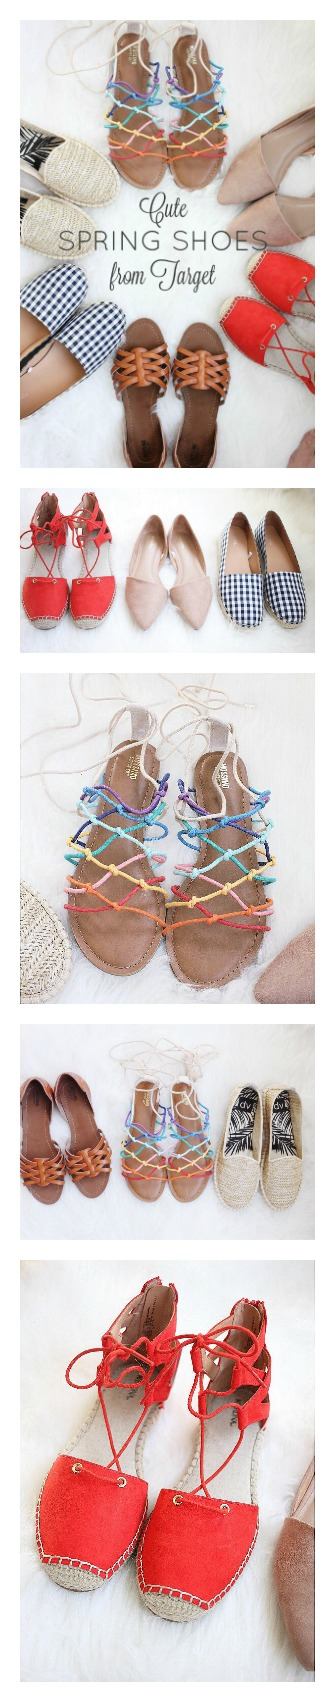 Cute Spring Shoes from Target 2017